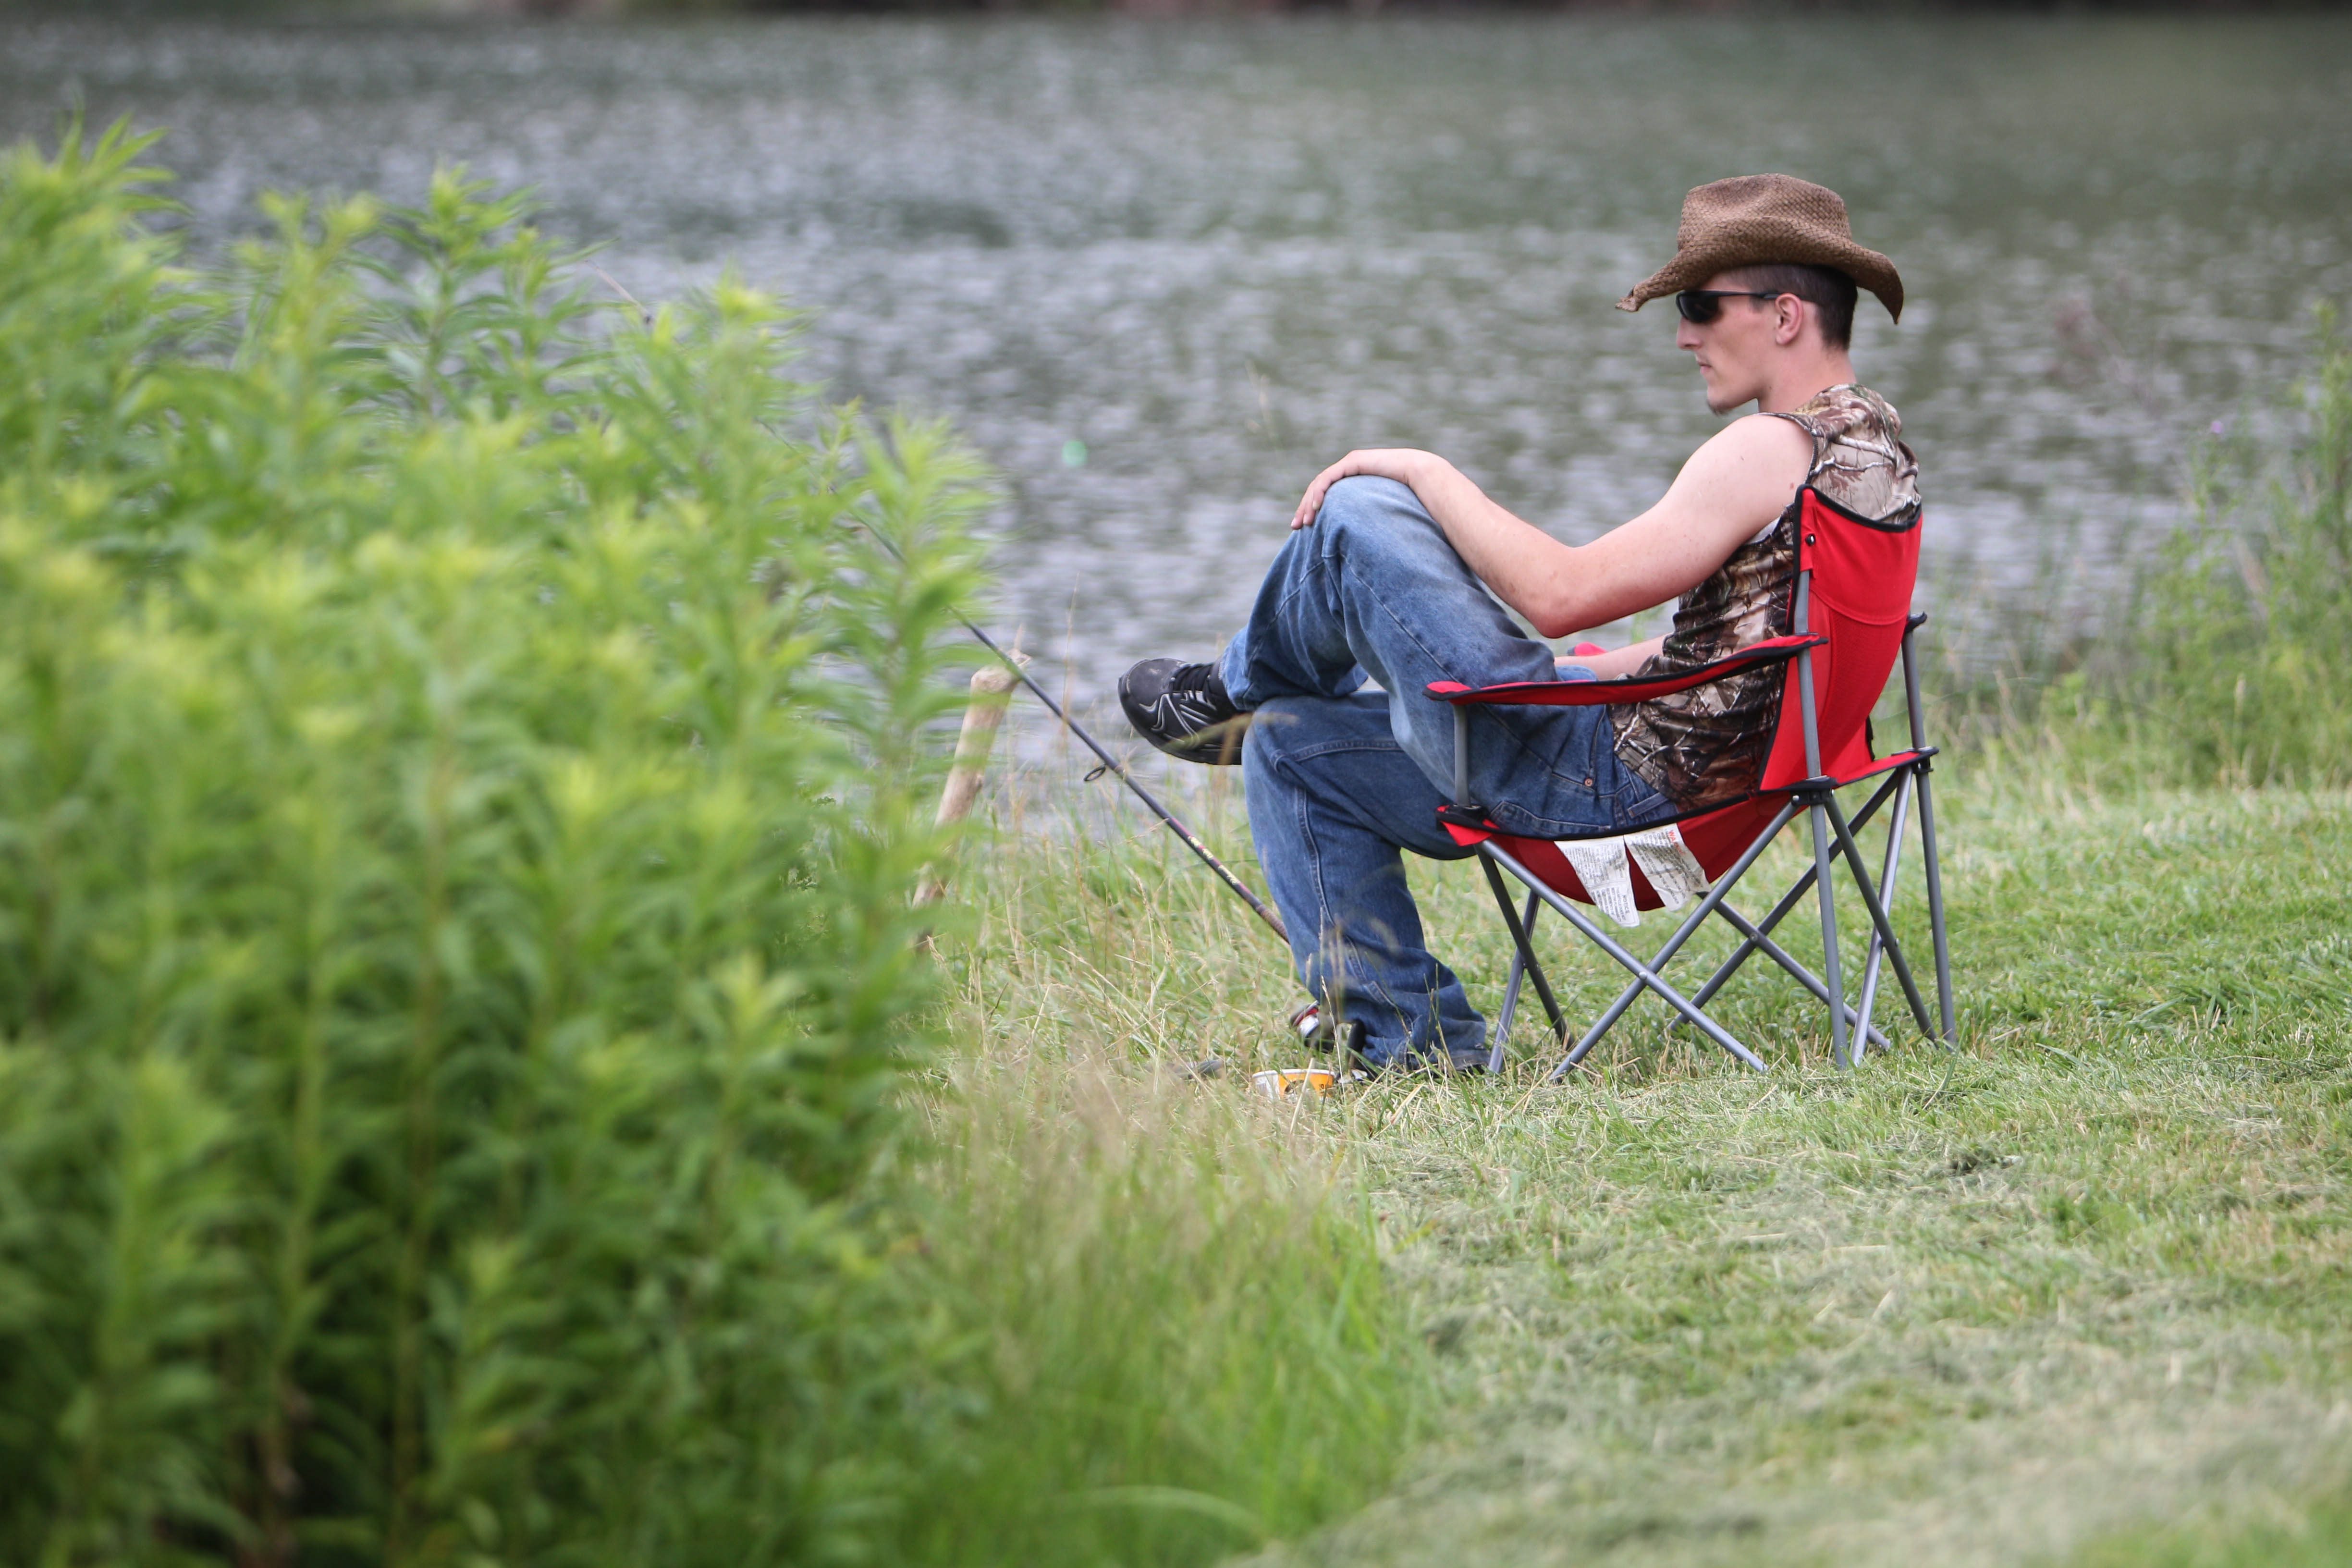 Zack Hauff of the City of Tonawanda fishes on his day off in one of the wetlands at at Beaver Island Park , Monday, July 1, 2013.  (Sharon Cantillon/Buffalo News)